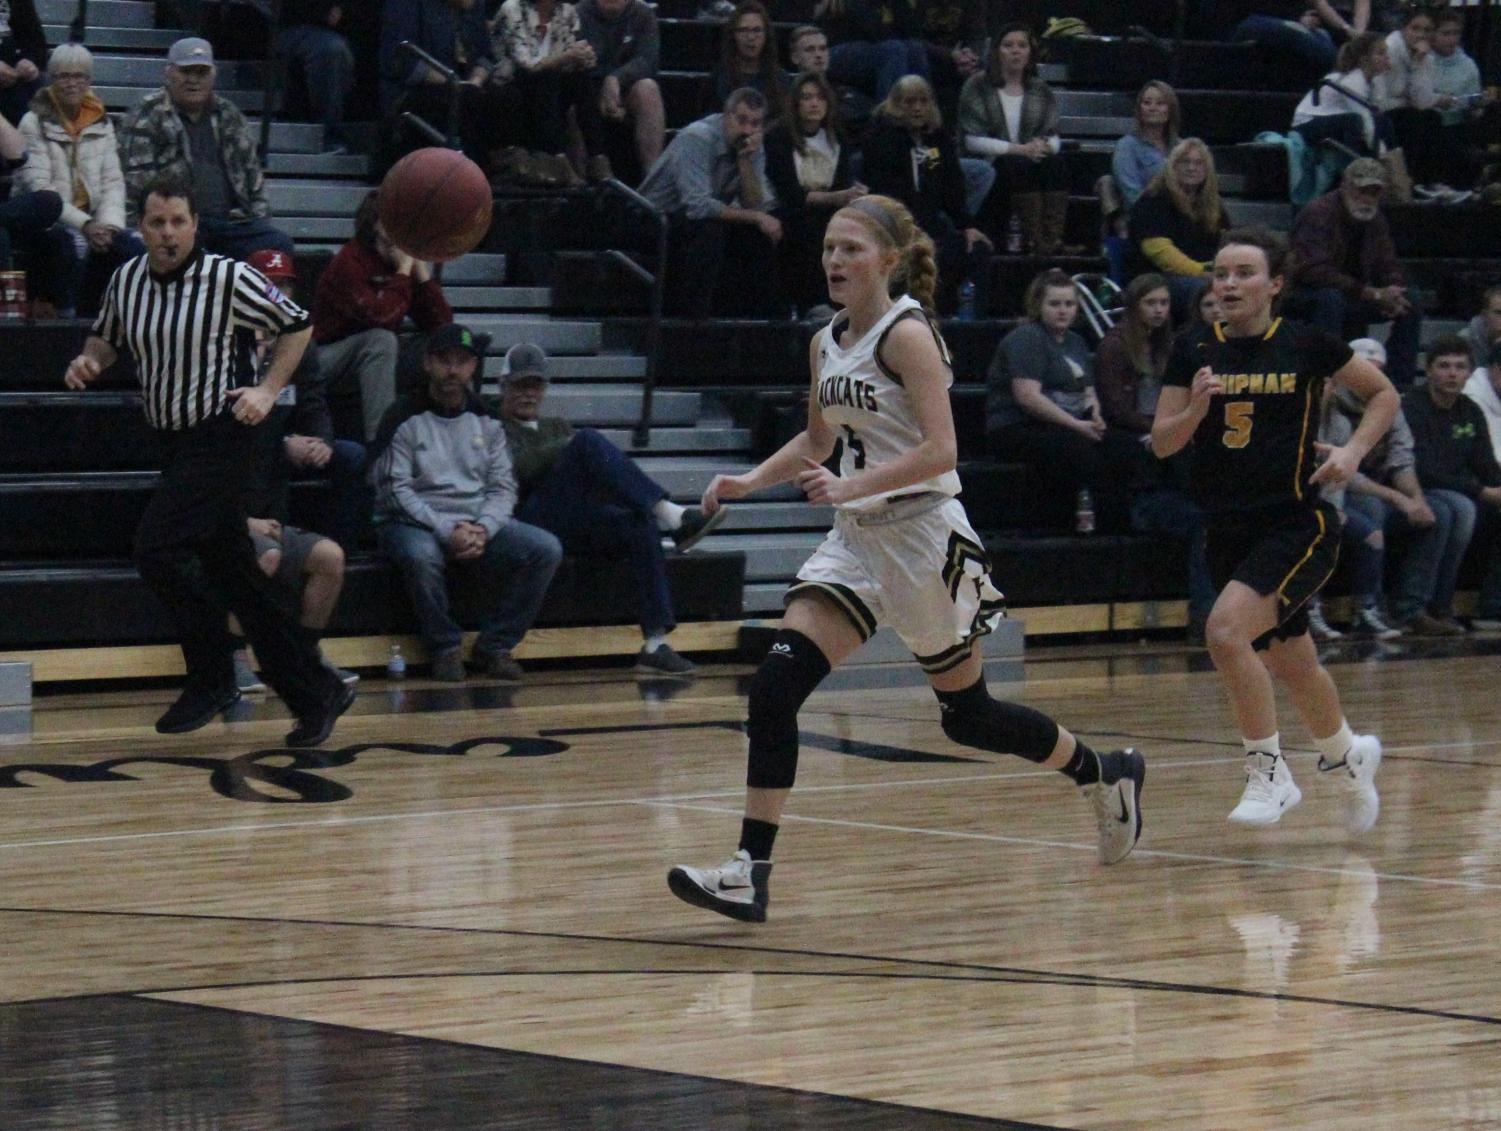 Marissa Hale runs to recover the ball at a home game against Doniphan.